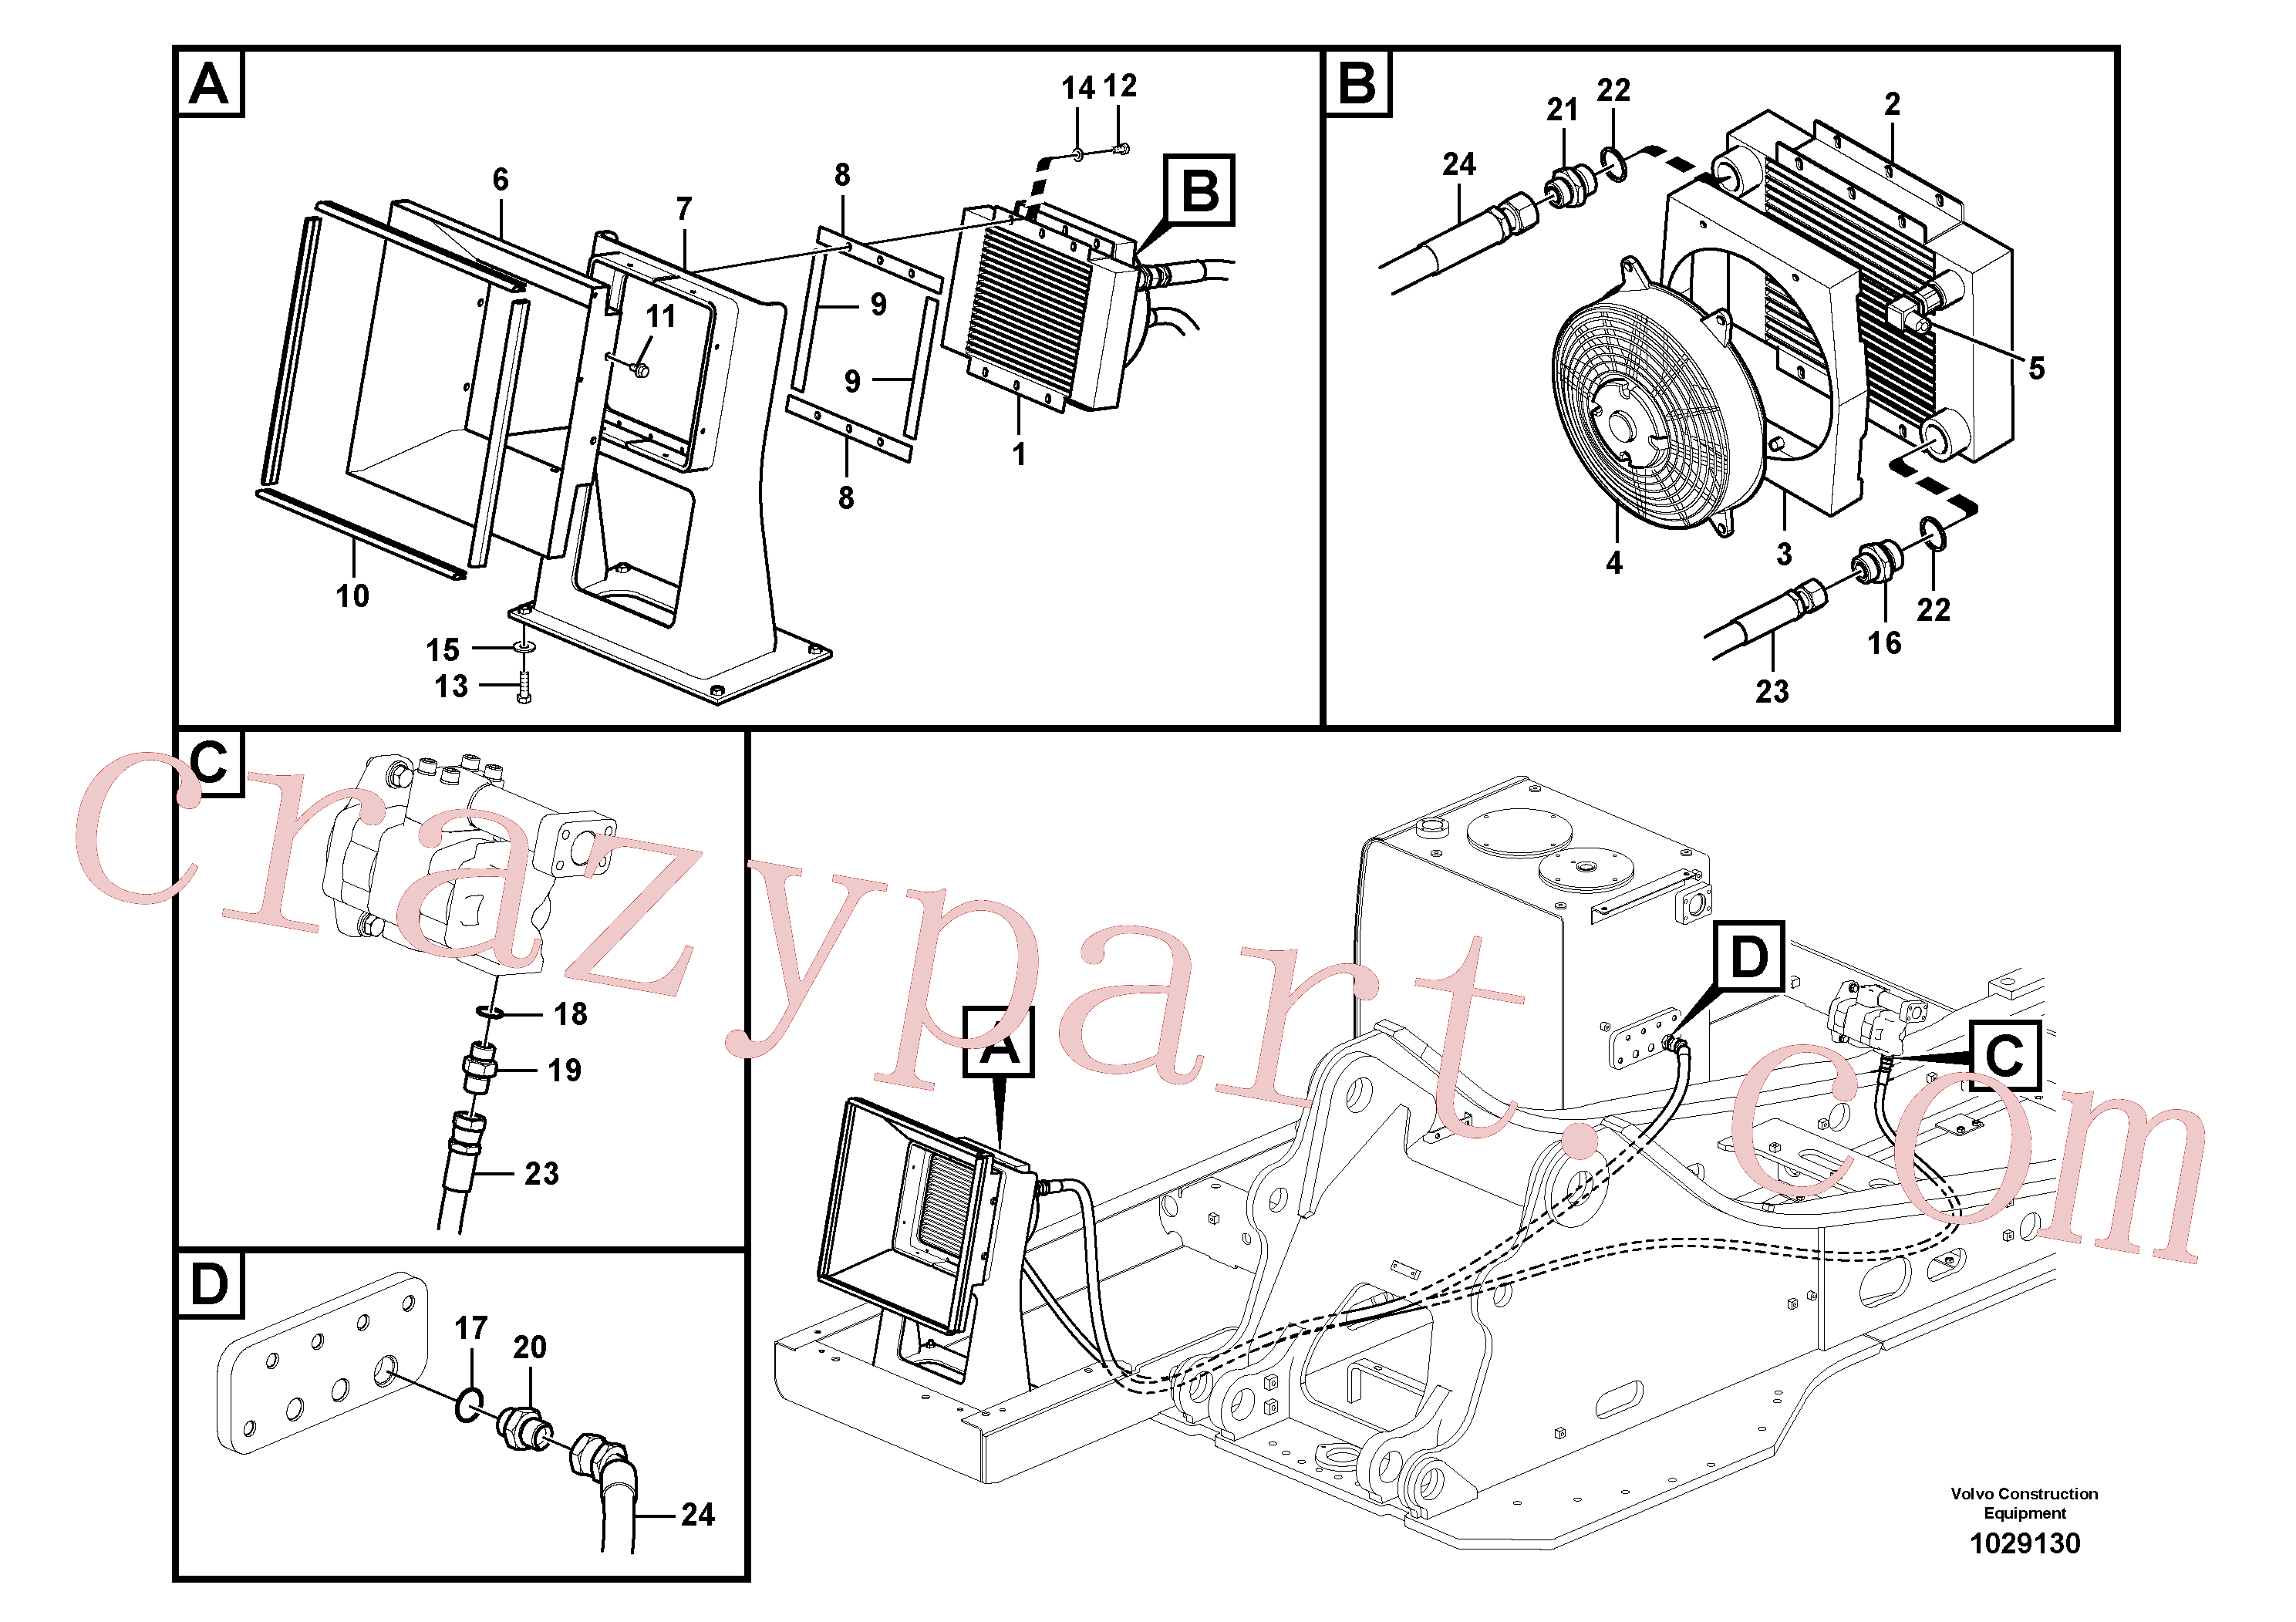 SA9412-12190 for Volvo Hydraulic system, hydraulic tank to hydraulic oil cooler(1029130 assembly)